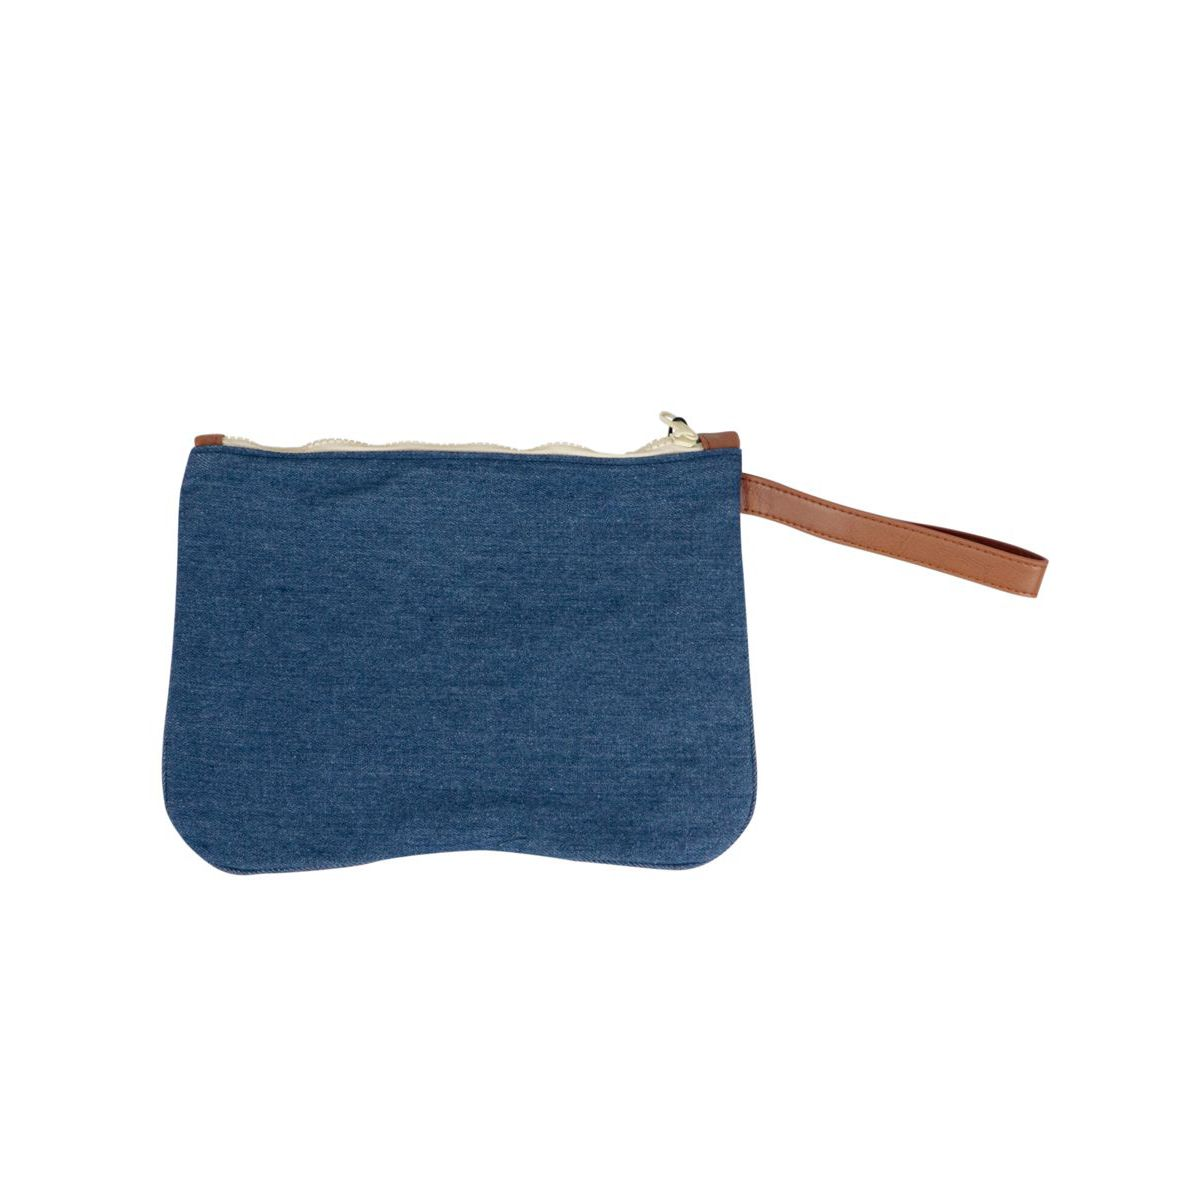 Parisienne patterned clutch bag with contrasting logo Denim MC2 Saint Barth